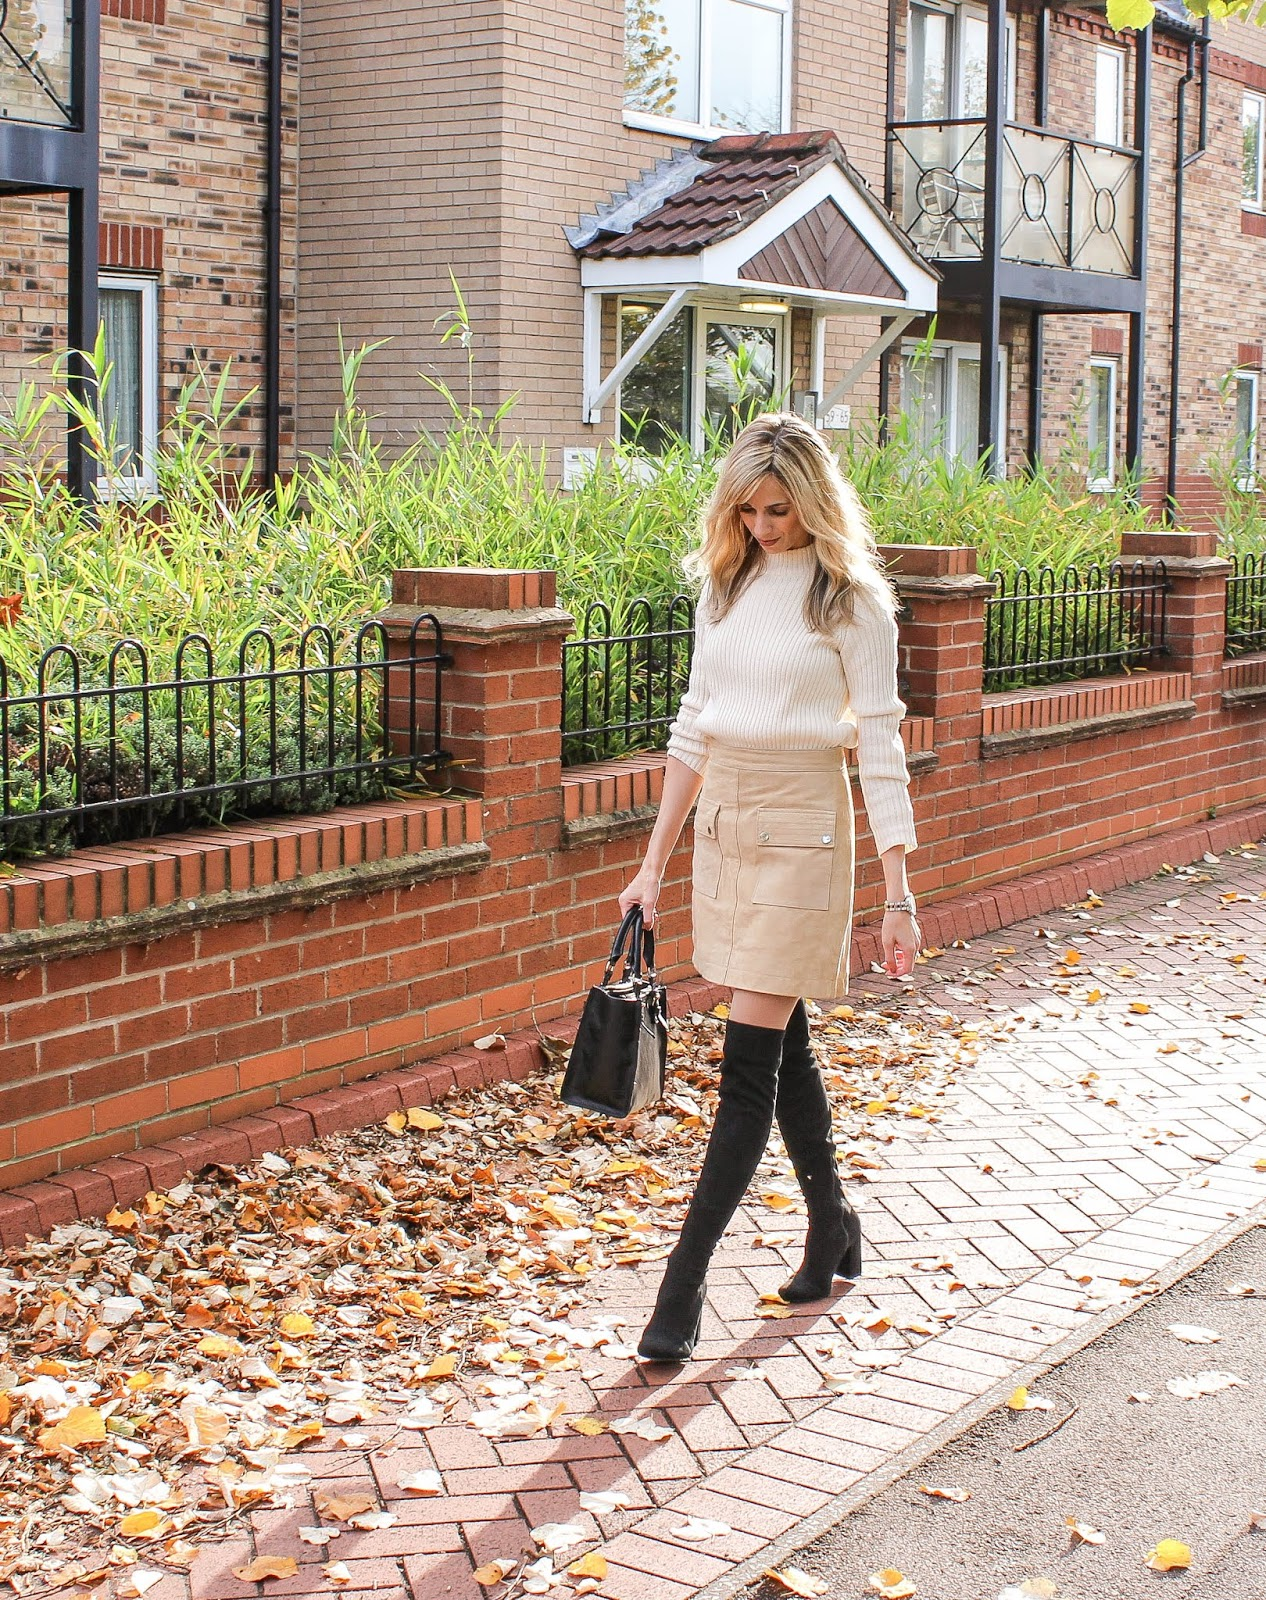 Tan suede skirt from Mango